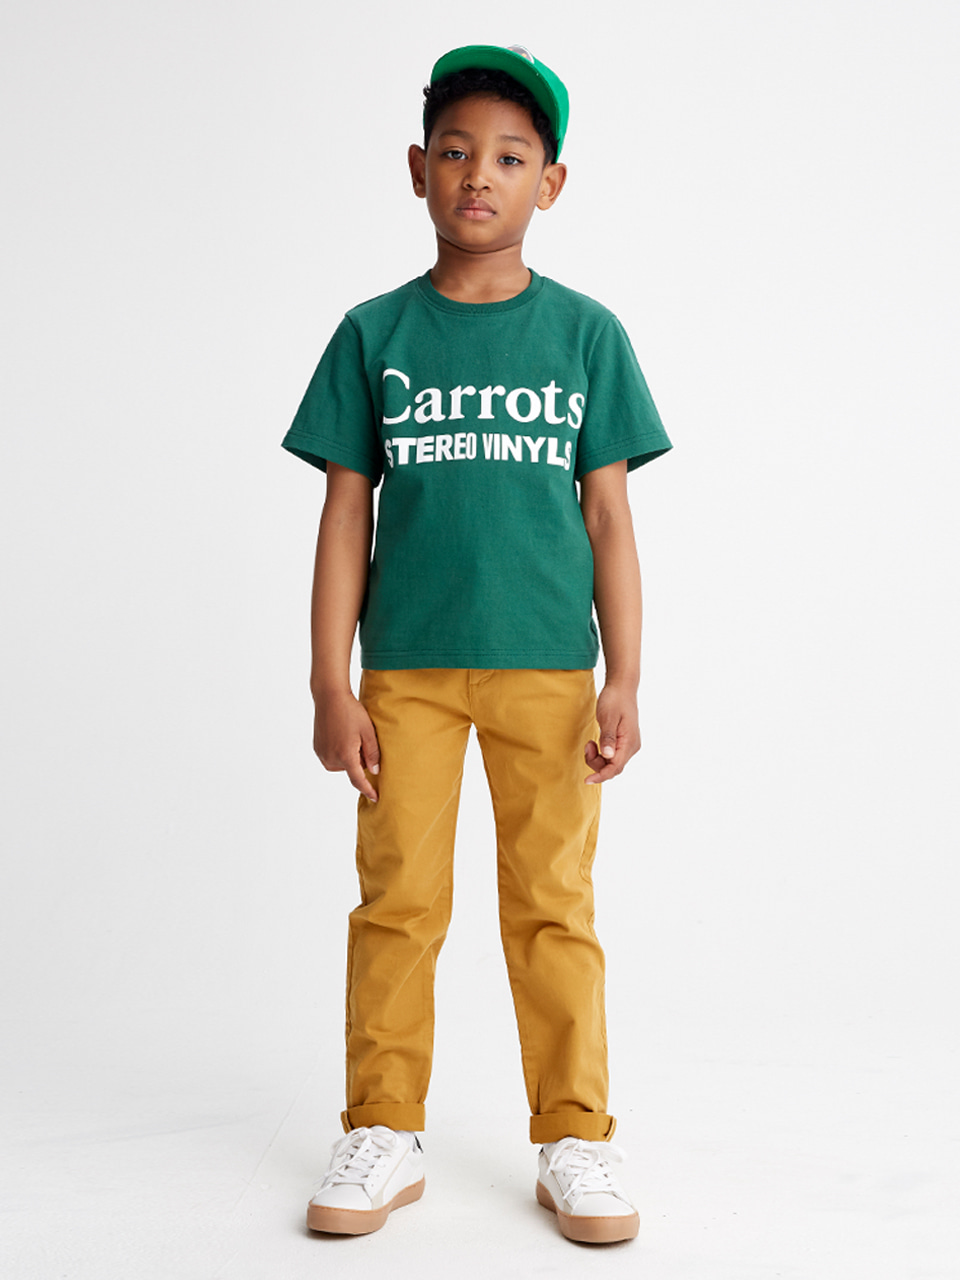 [SS20 SV X Carrots] Carrots Logo T-Shirts for Kids(Green) 스테레오 바이널즈[SS20 SV X Carrots] Carrots Logo T-Shirts for Kids(Green)